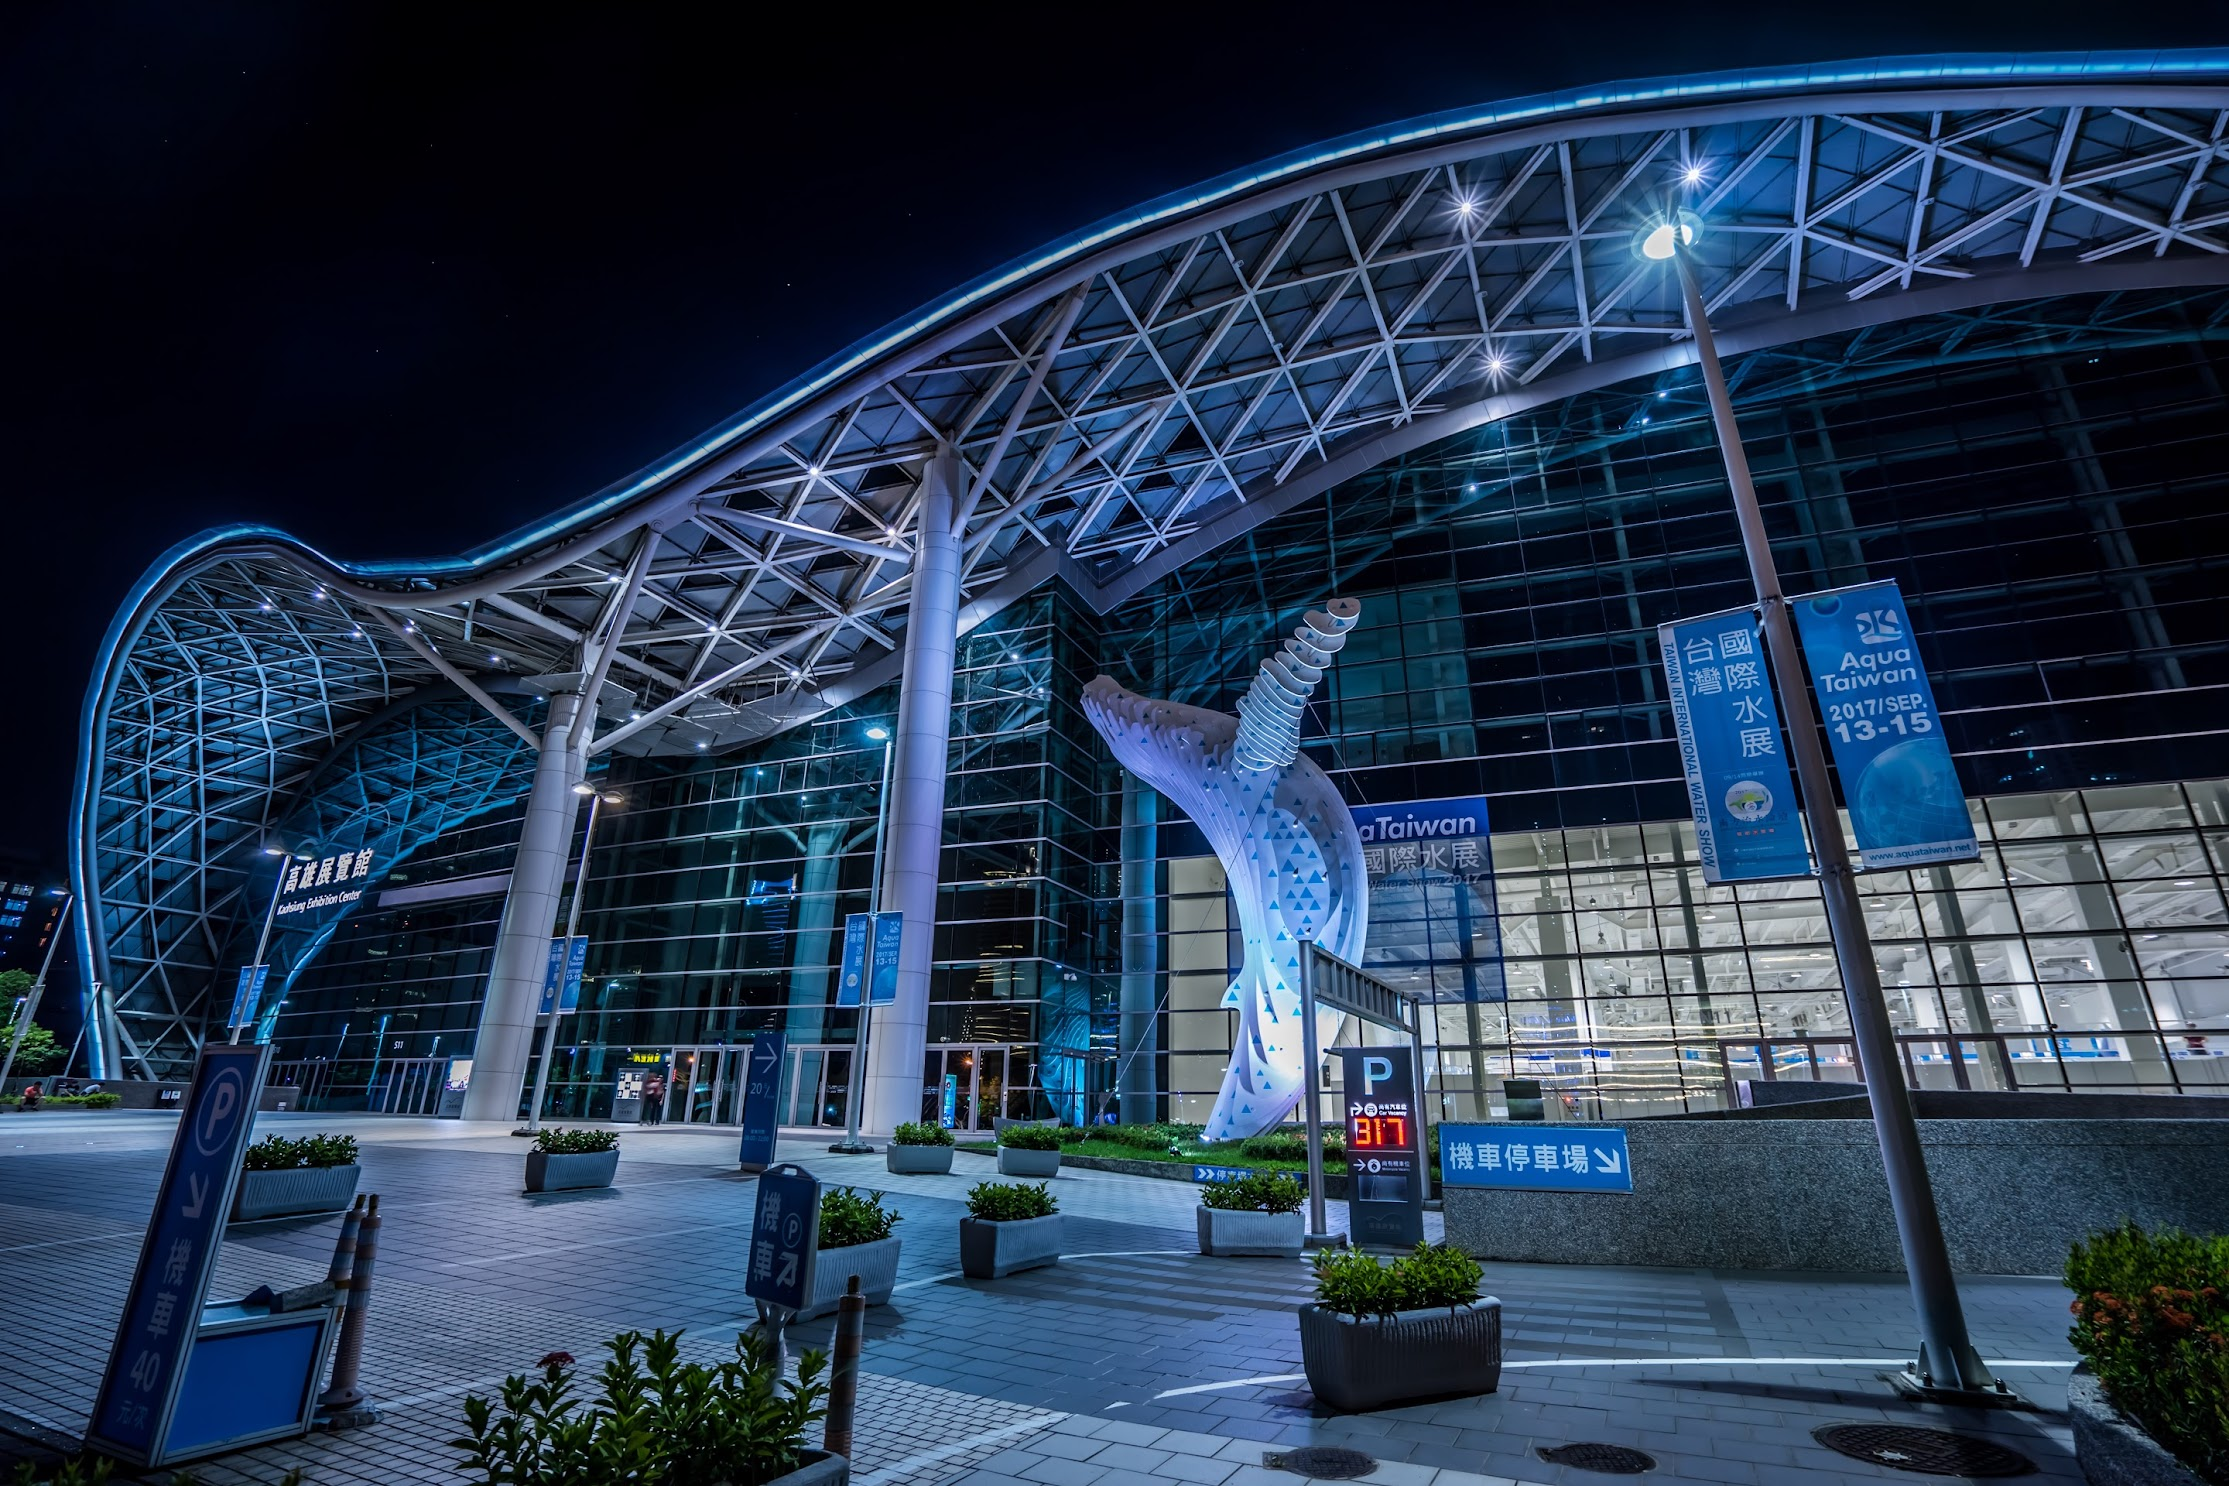 Taiwan Kaohsiung Exhibition Center night view3